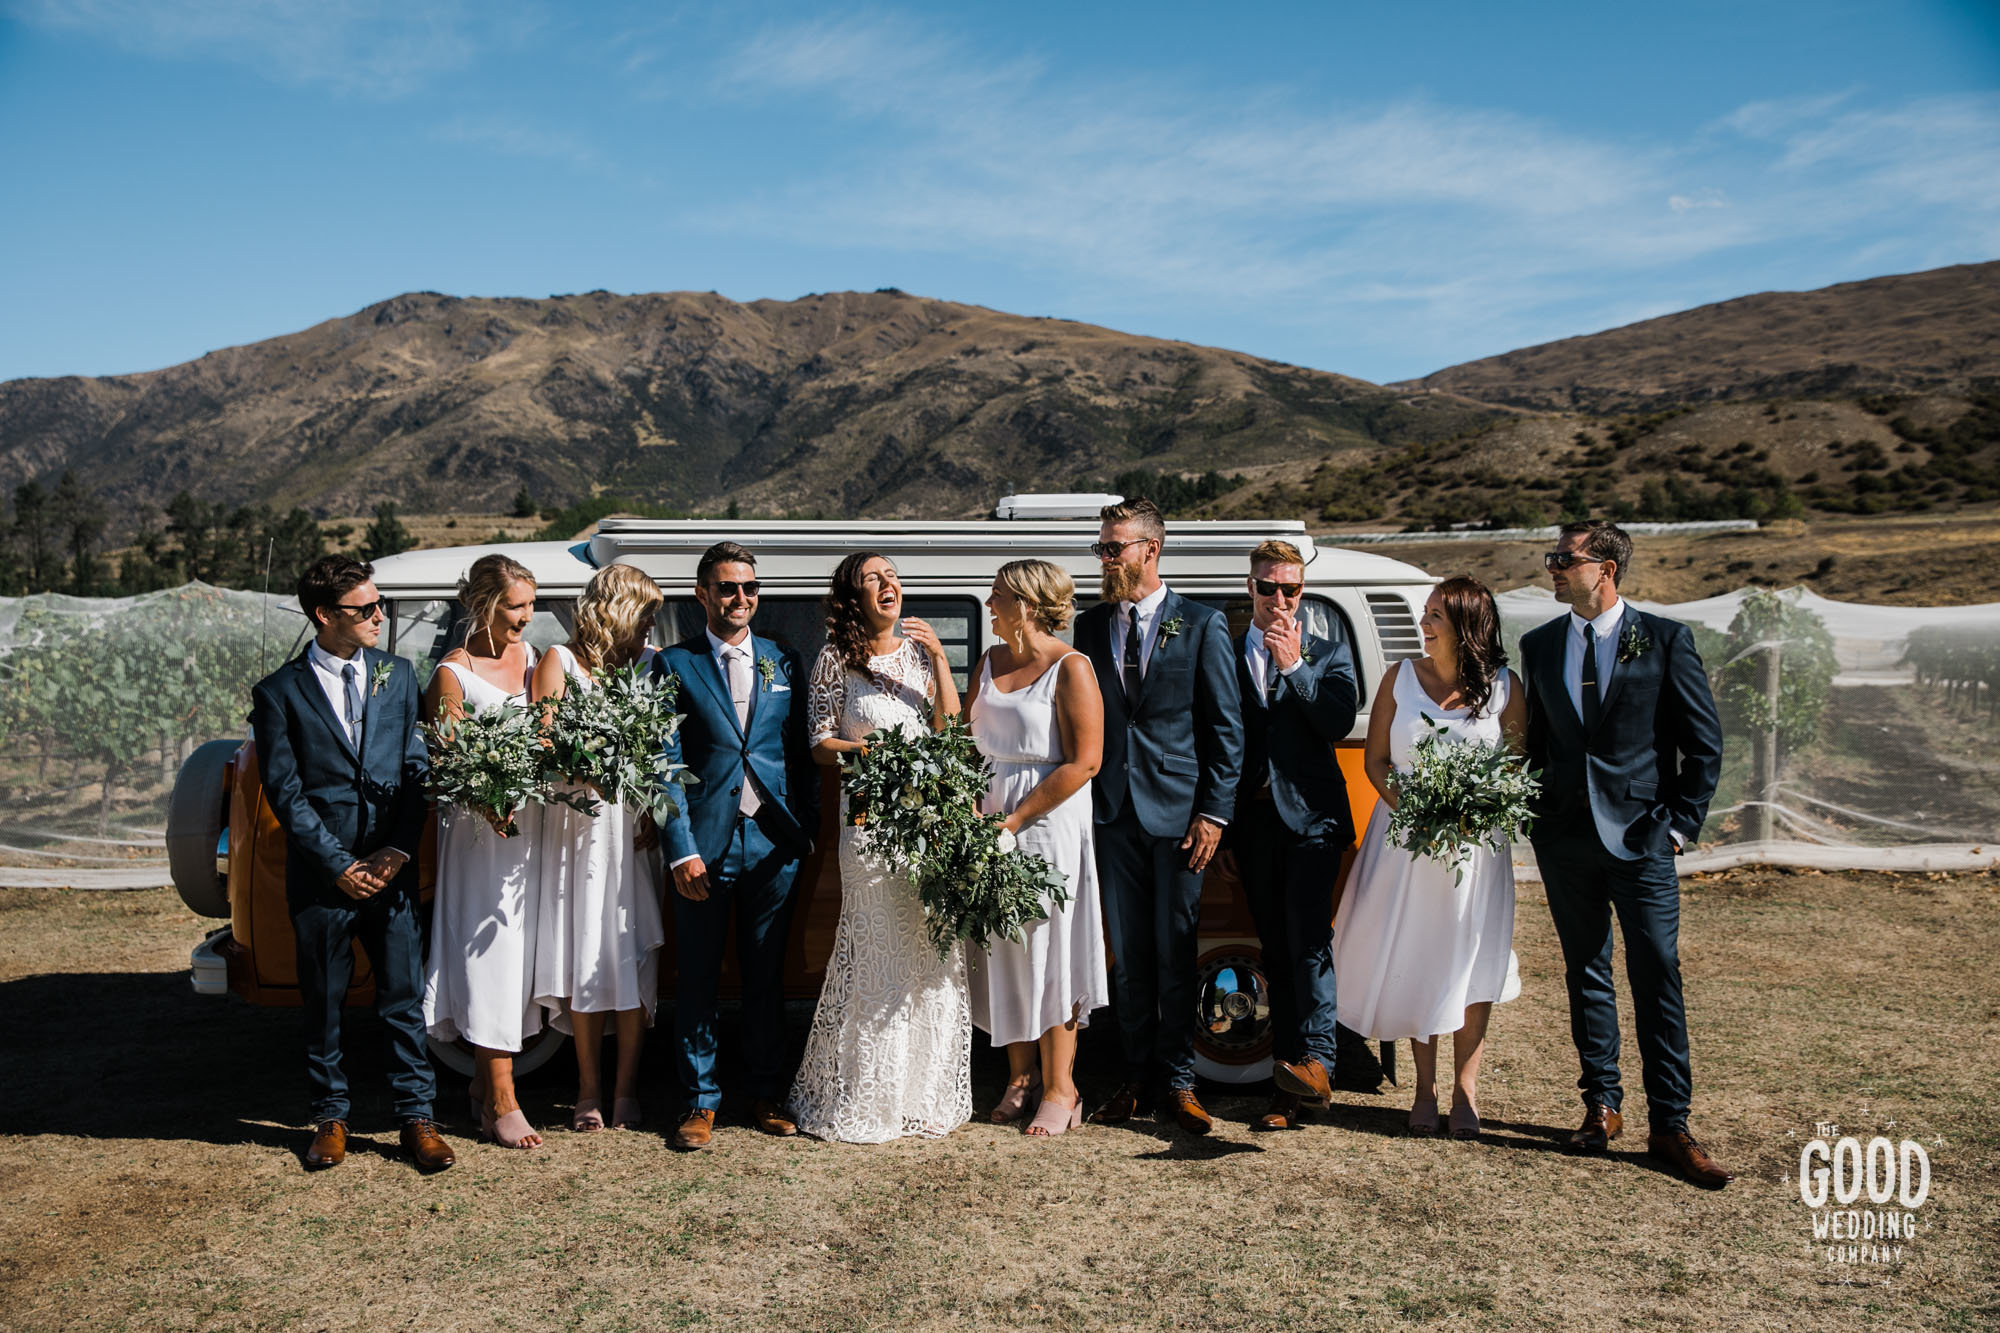 The-Good-Wedding-Company-LaurenLukas-Peregrine-Winery-Wanaka-Photographer-338.jpg